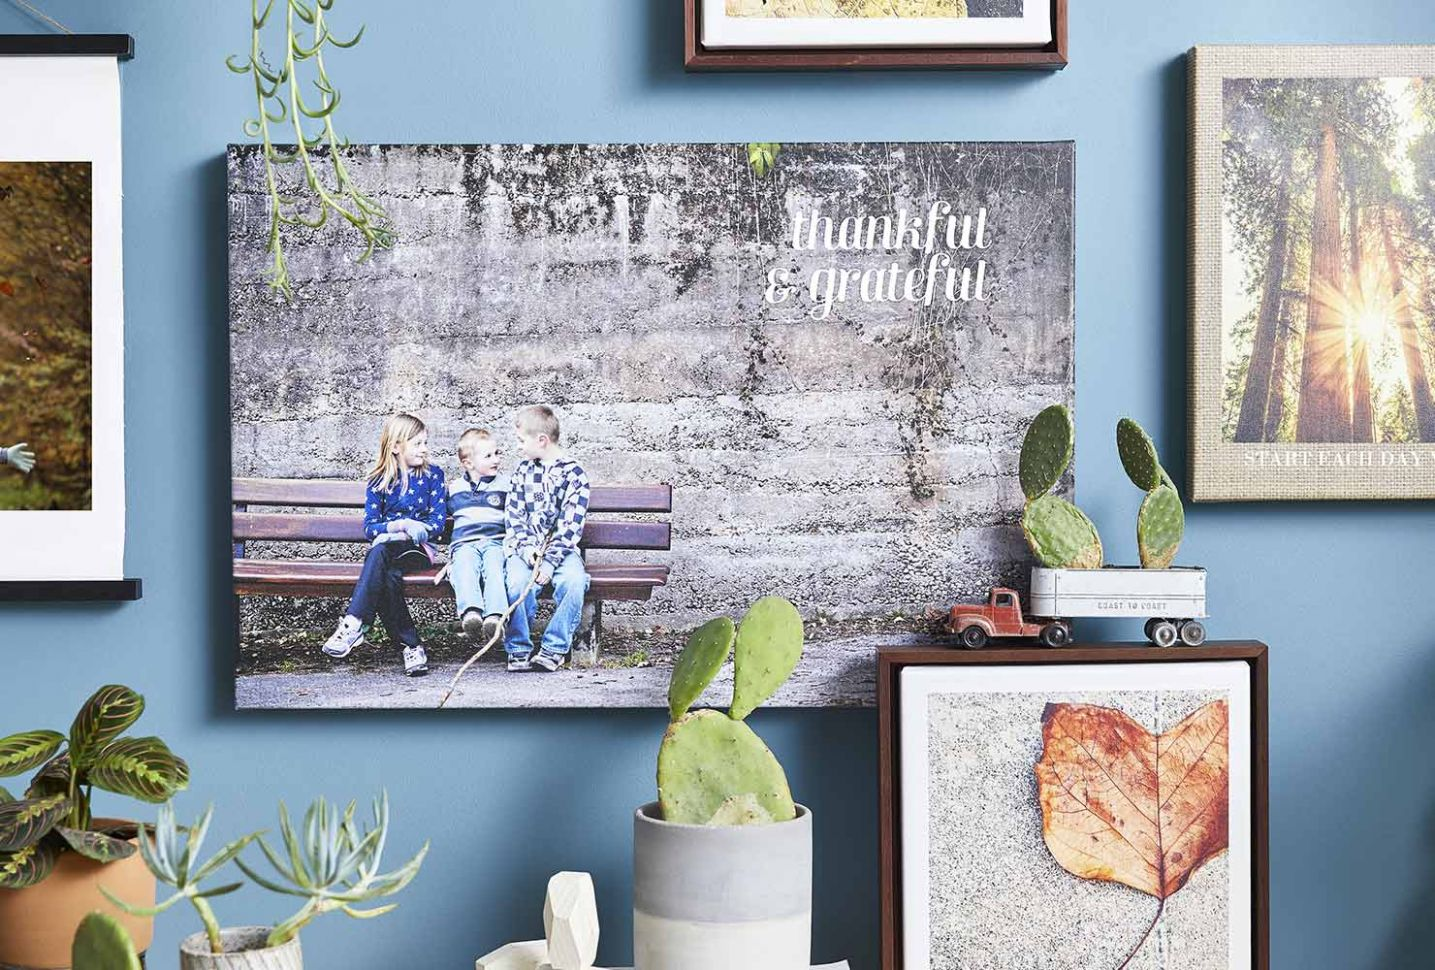 How To Create The Best Prints On Canvas | Shutterfly - wall decor ideas canvas